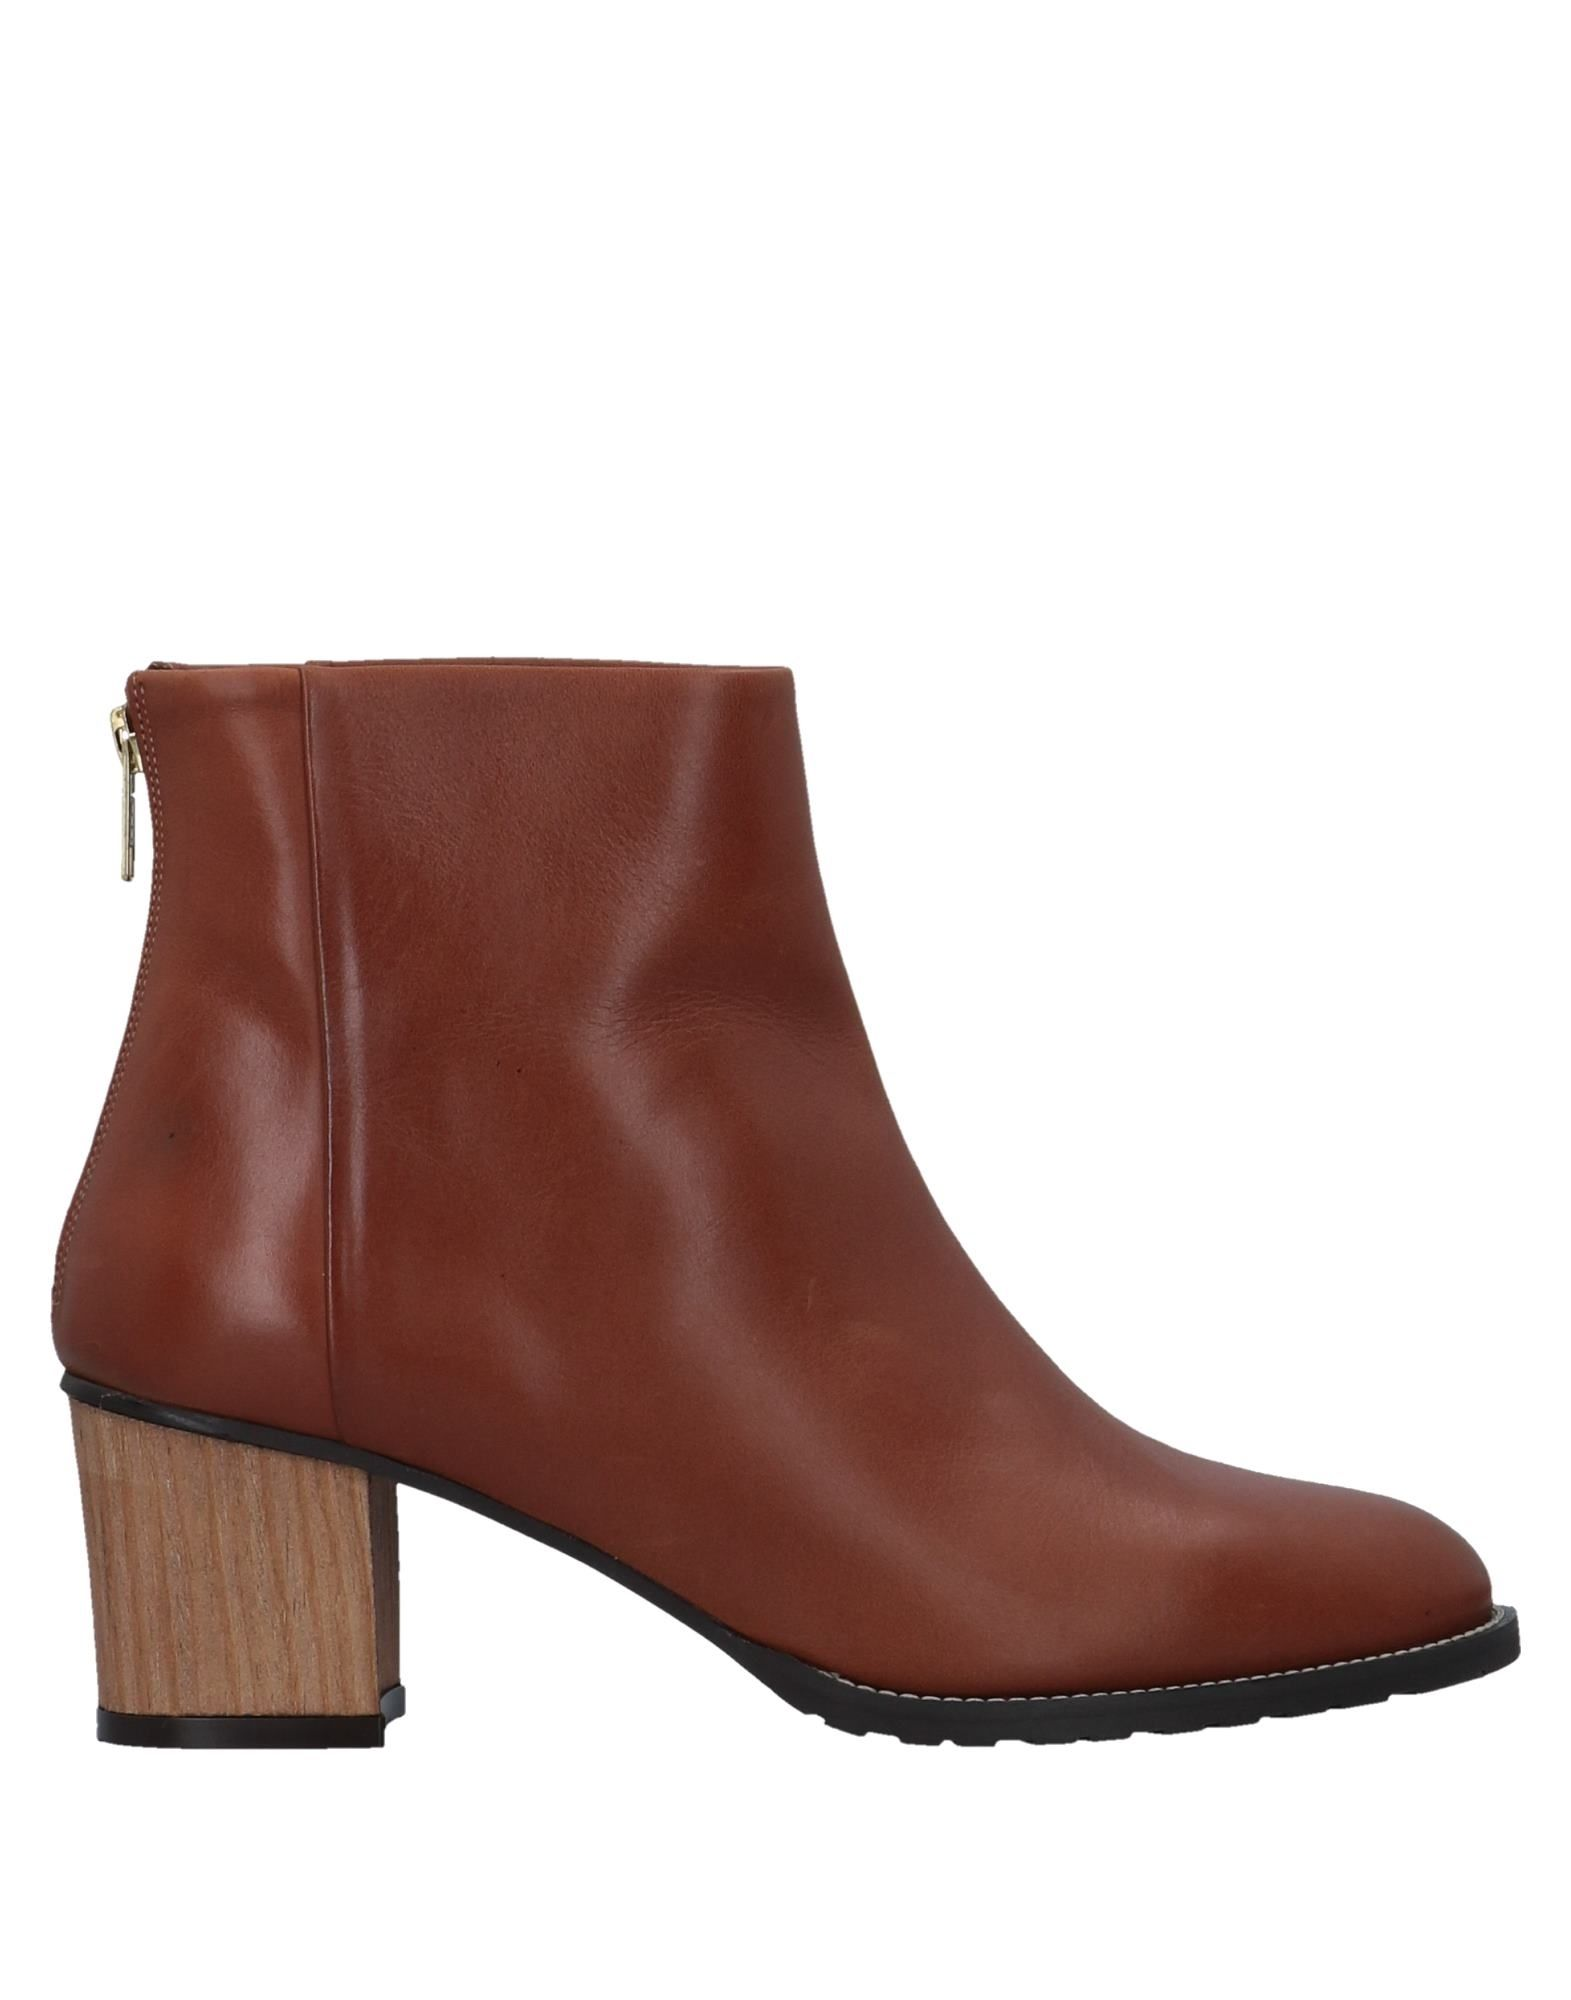 Sessun Ankle Boot - Women Sessun Ankle Boots online on   on Canada - 11535303BH e348f2